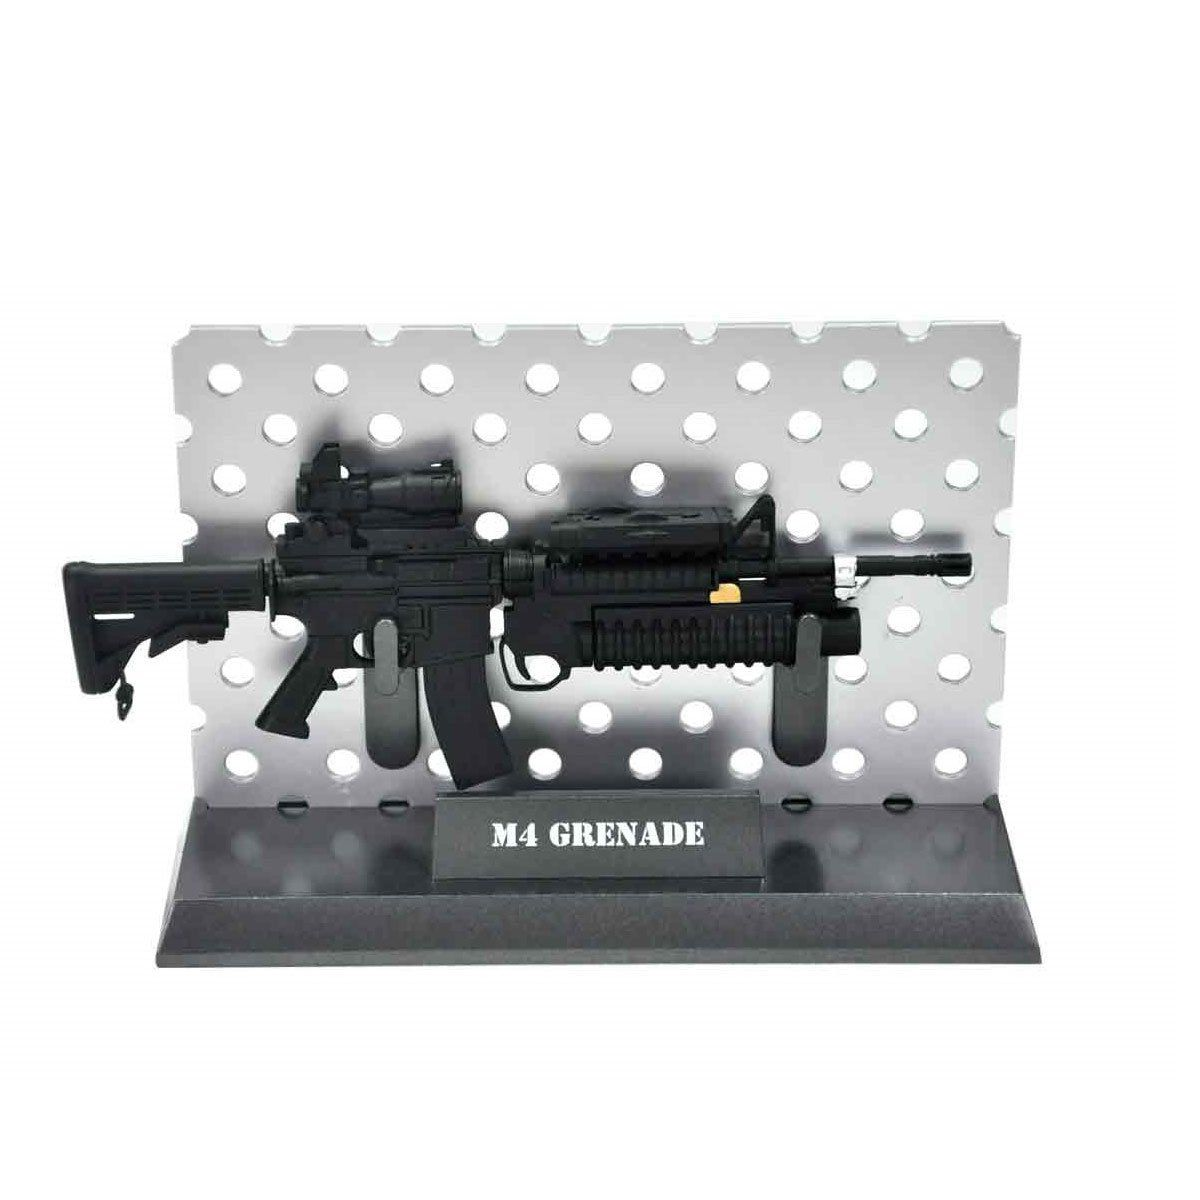 Miniatura de Arma Rifle M4 Grenade Arsenal Guns